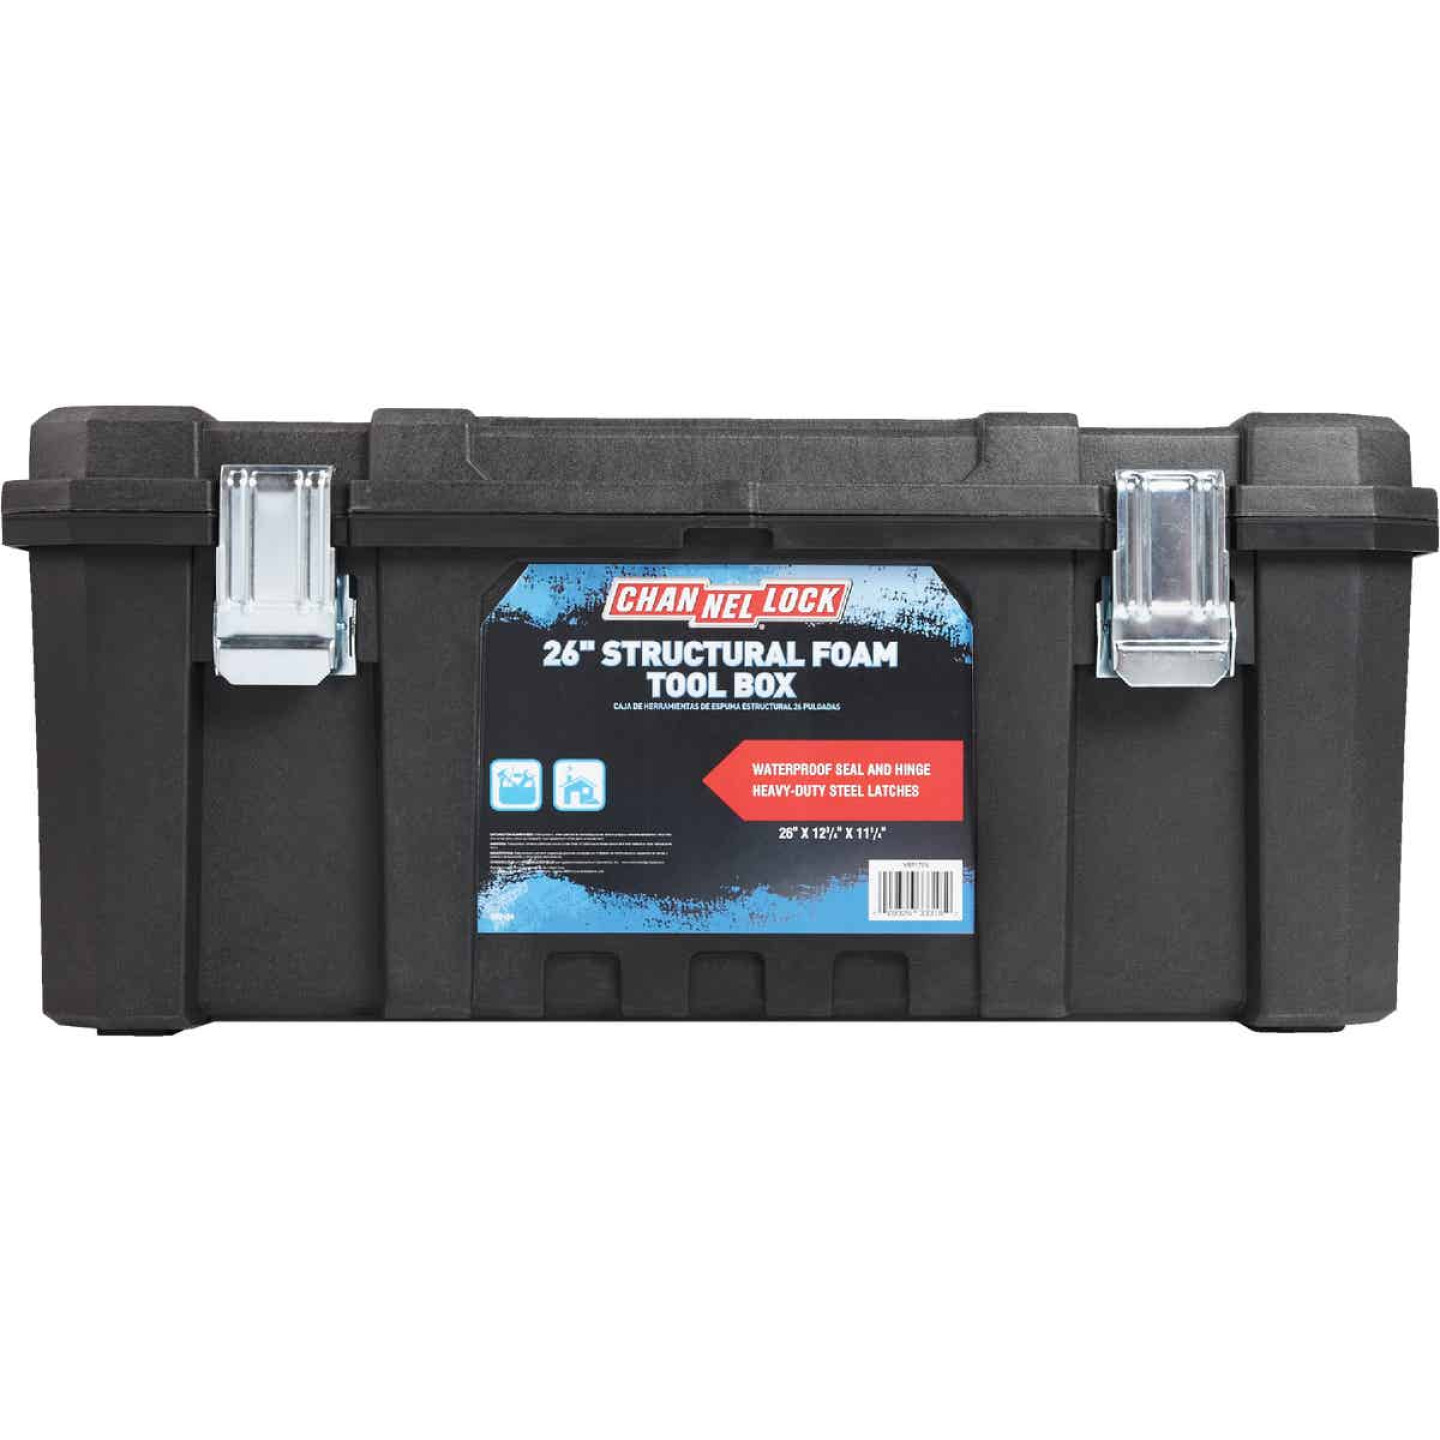 Channellock 26 In. Structural Foam Toolbox Image 2